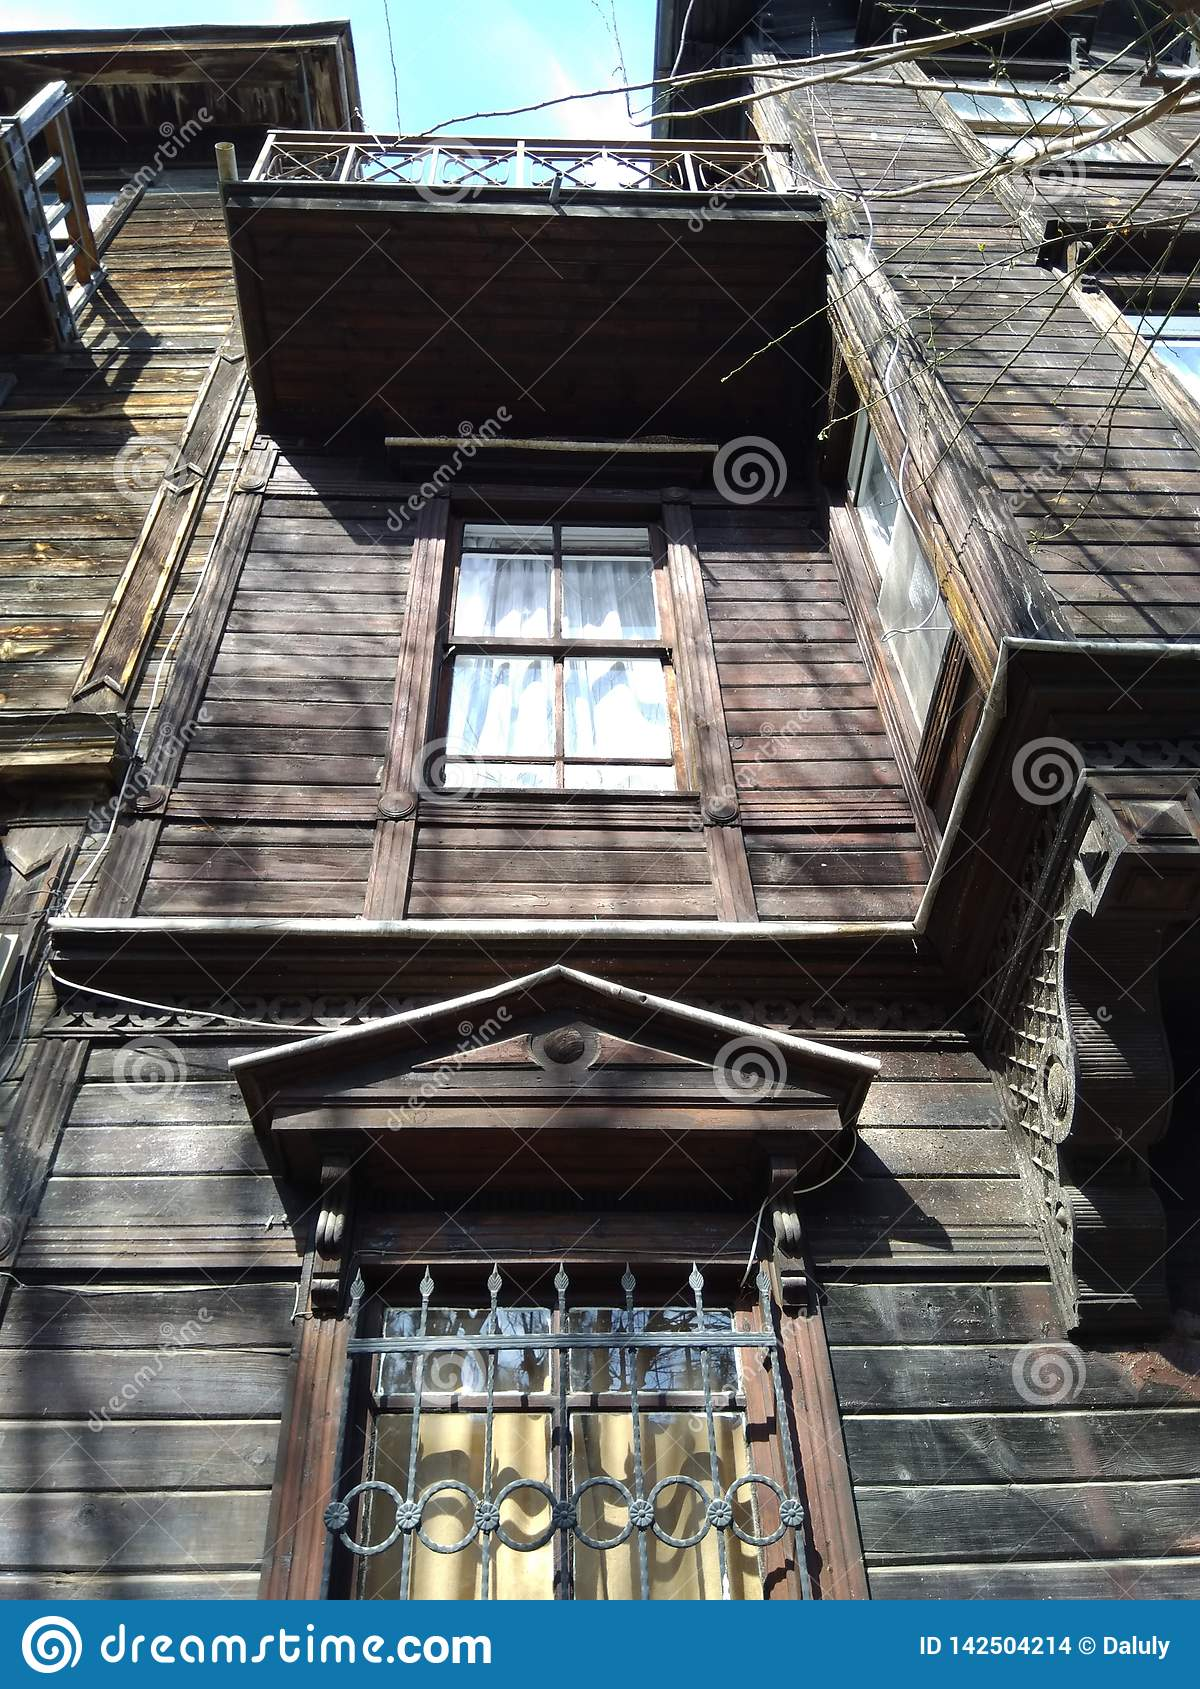 Old wooden abandoned house close up with many decorative details